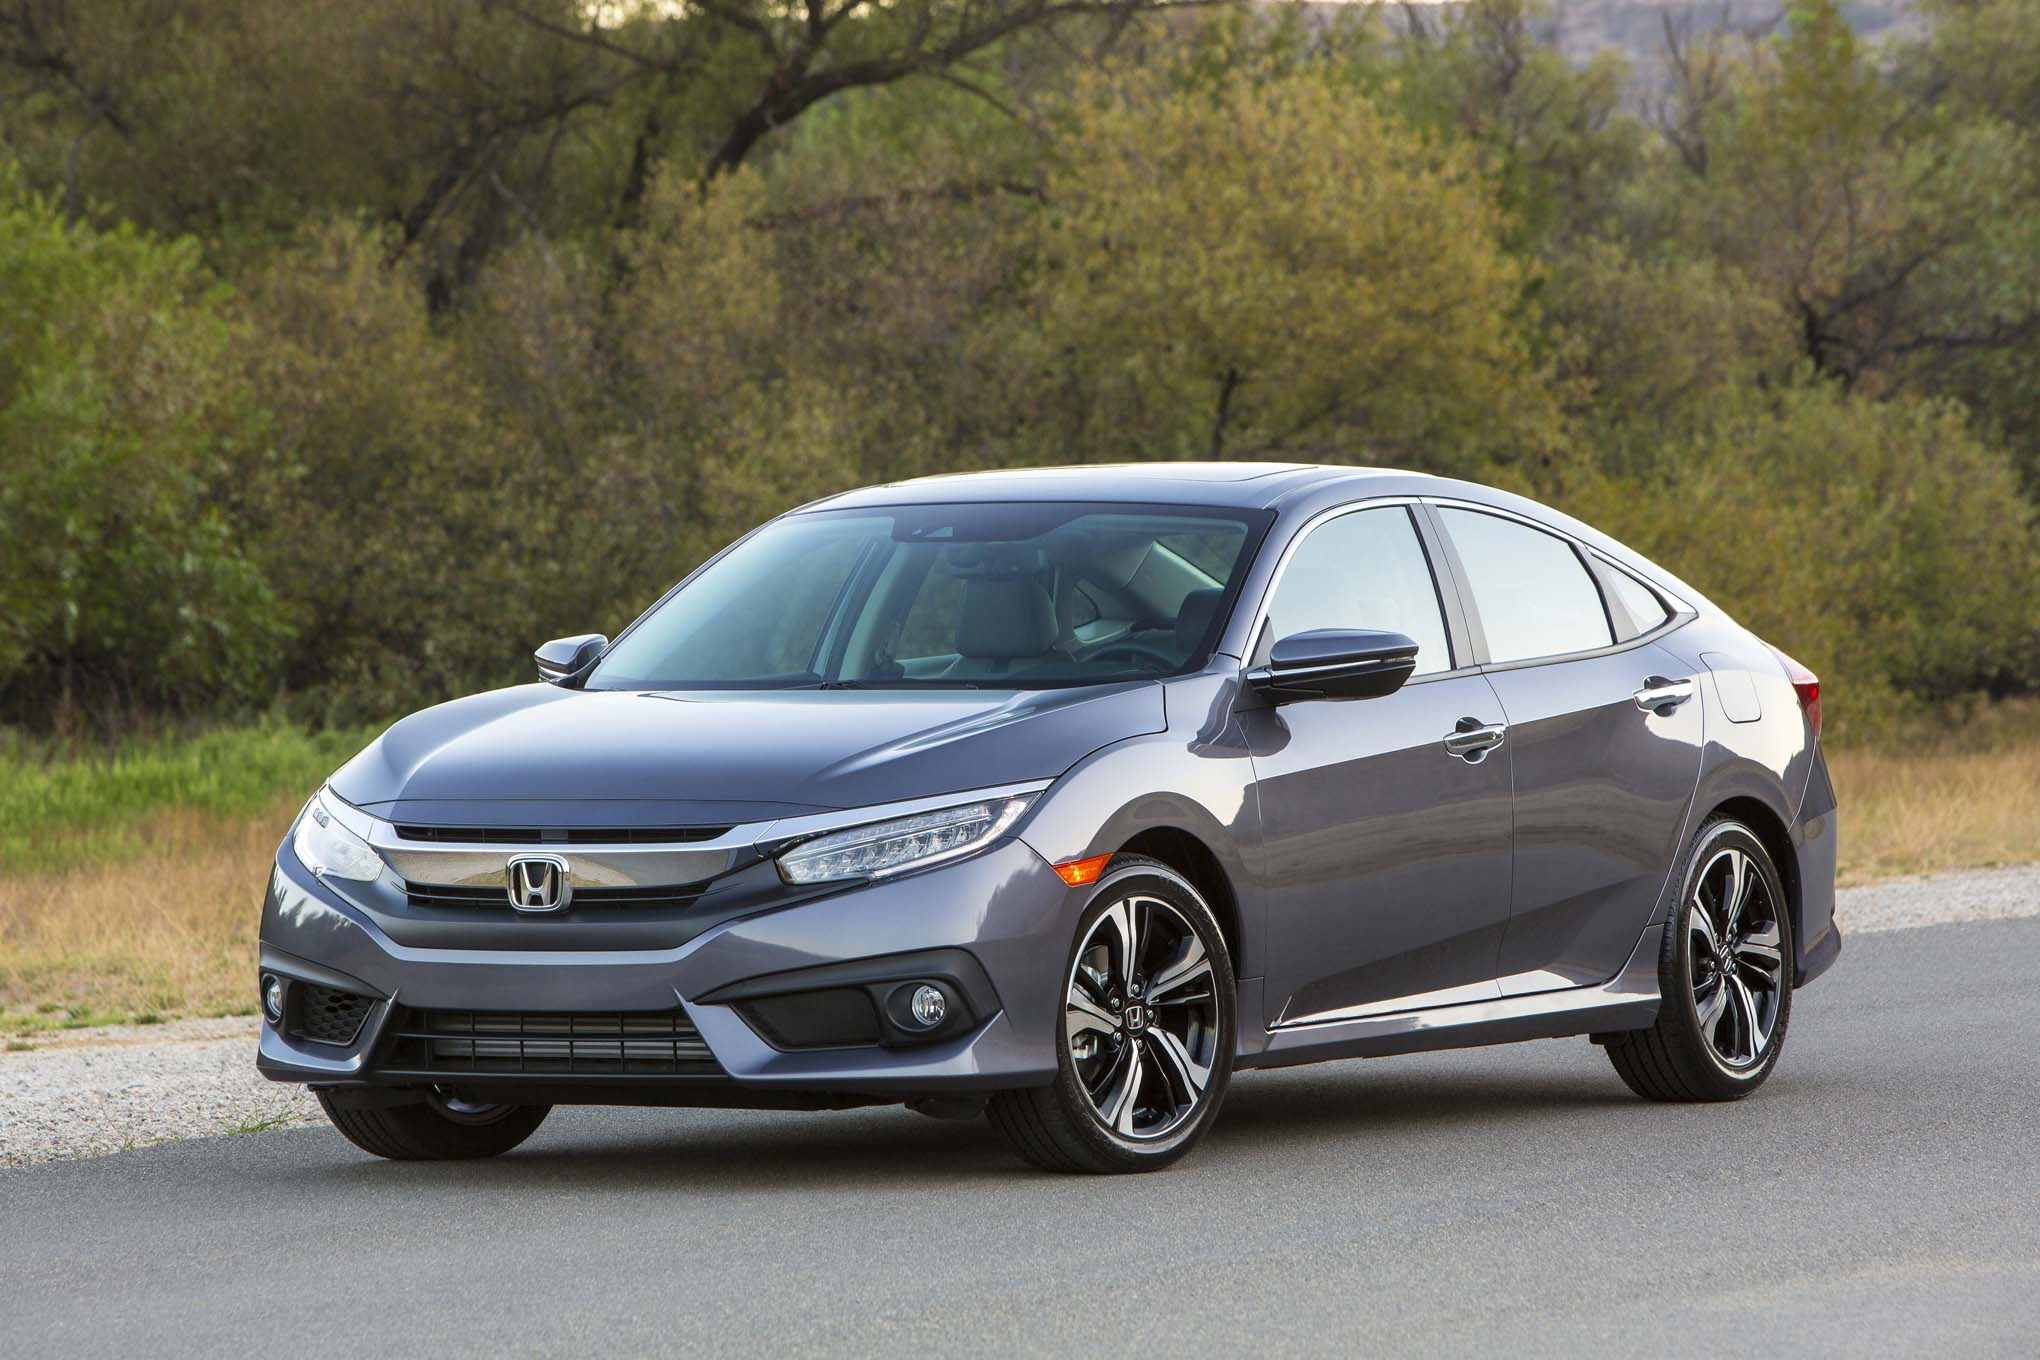 Research 2017                   HONDA Civic pictures, prices and reviews